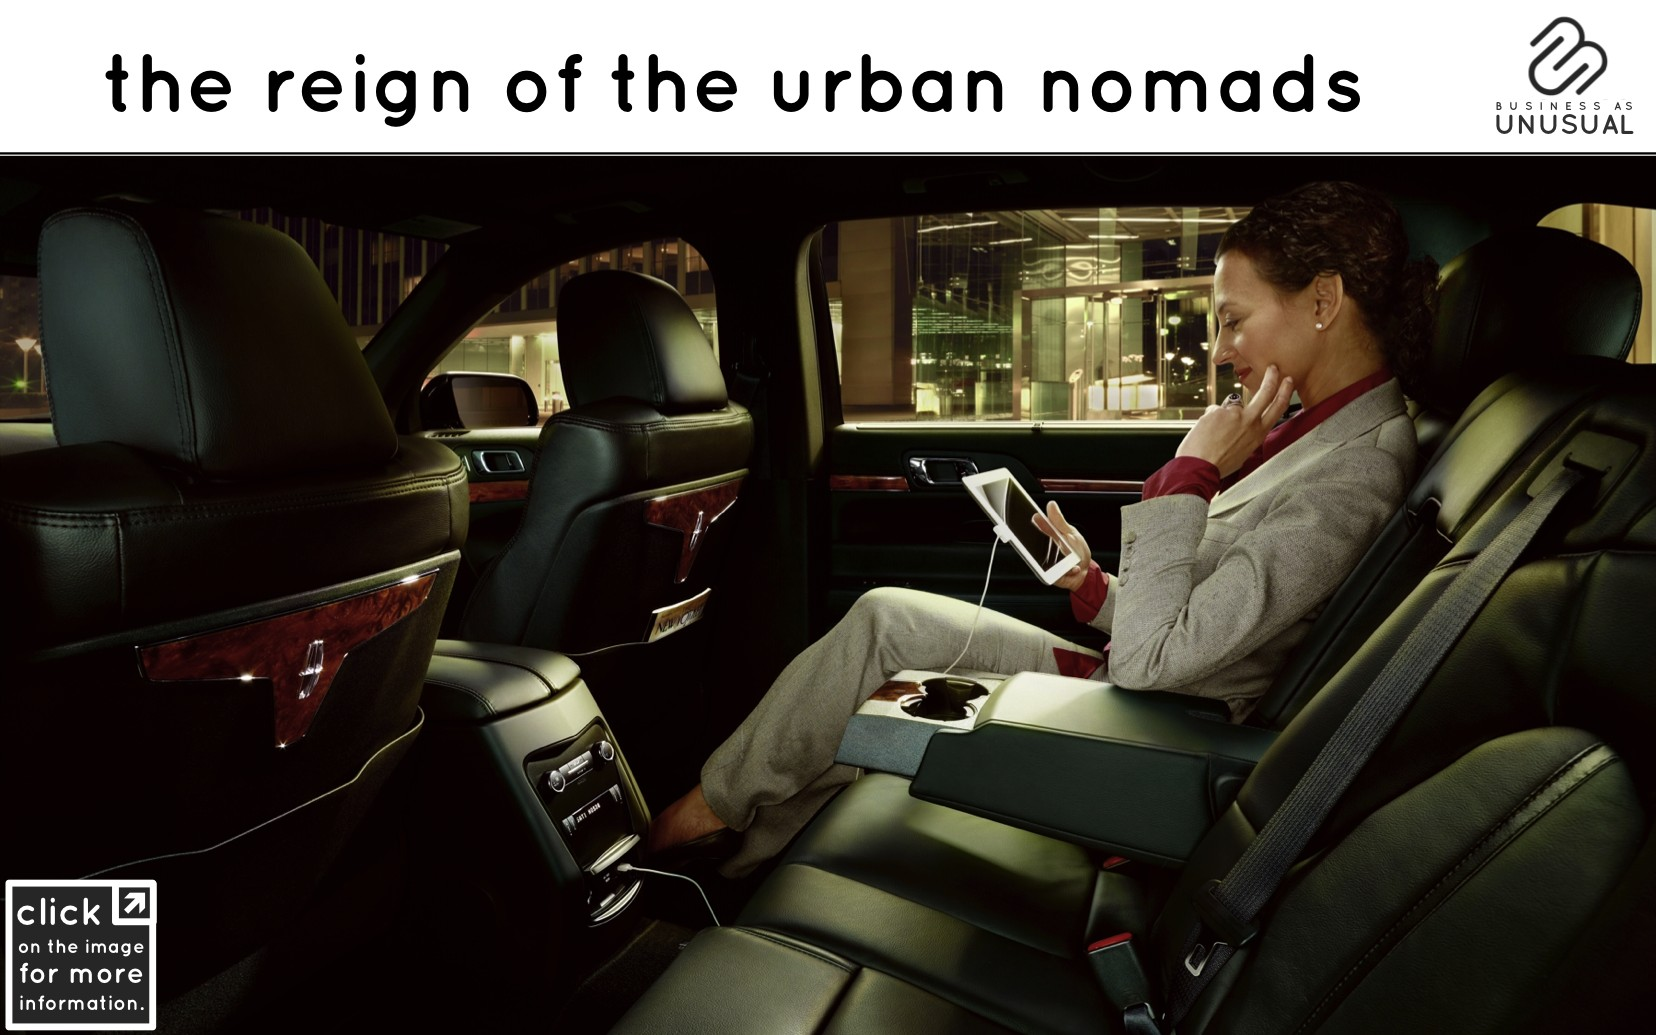 the reign of the urban nomads - uber